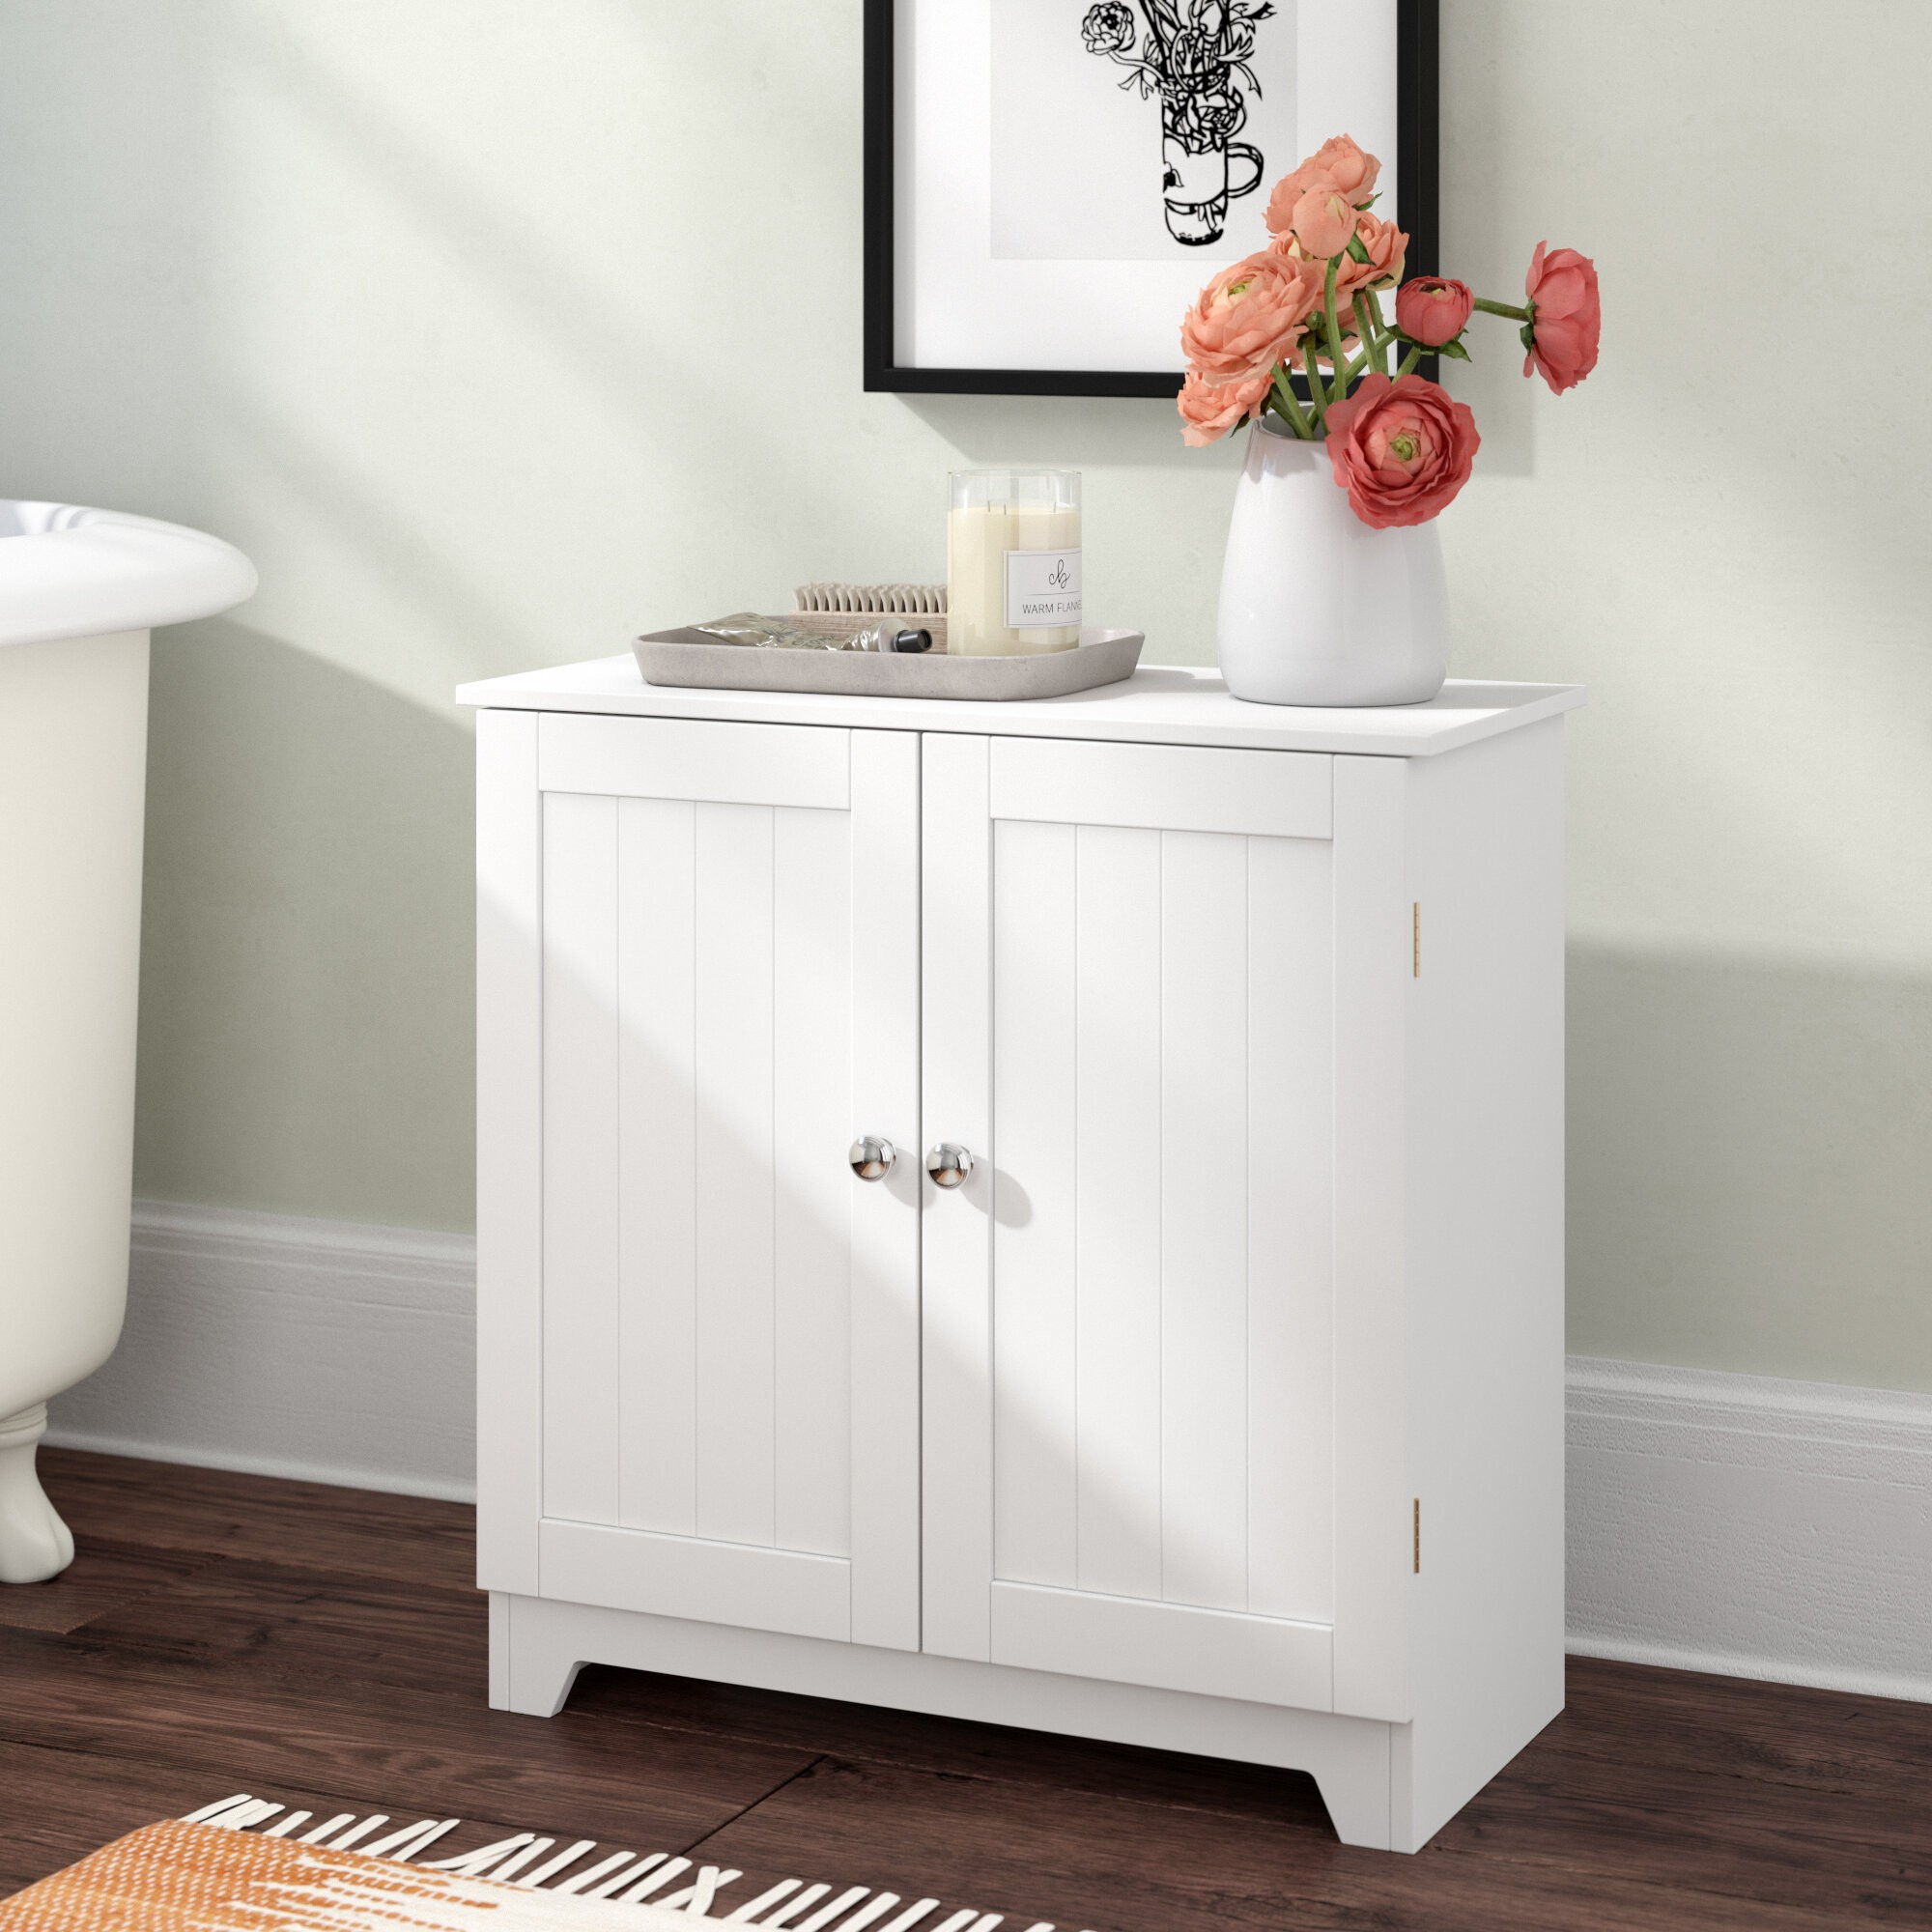 10 Best Bathroom Cabinets For 2021 Ideas On Foter